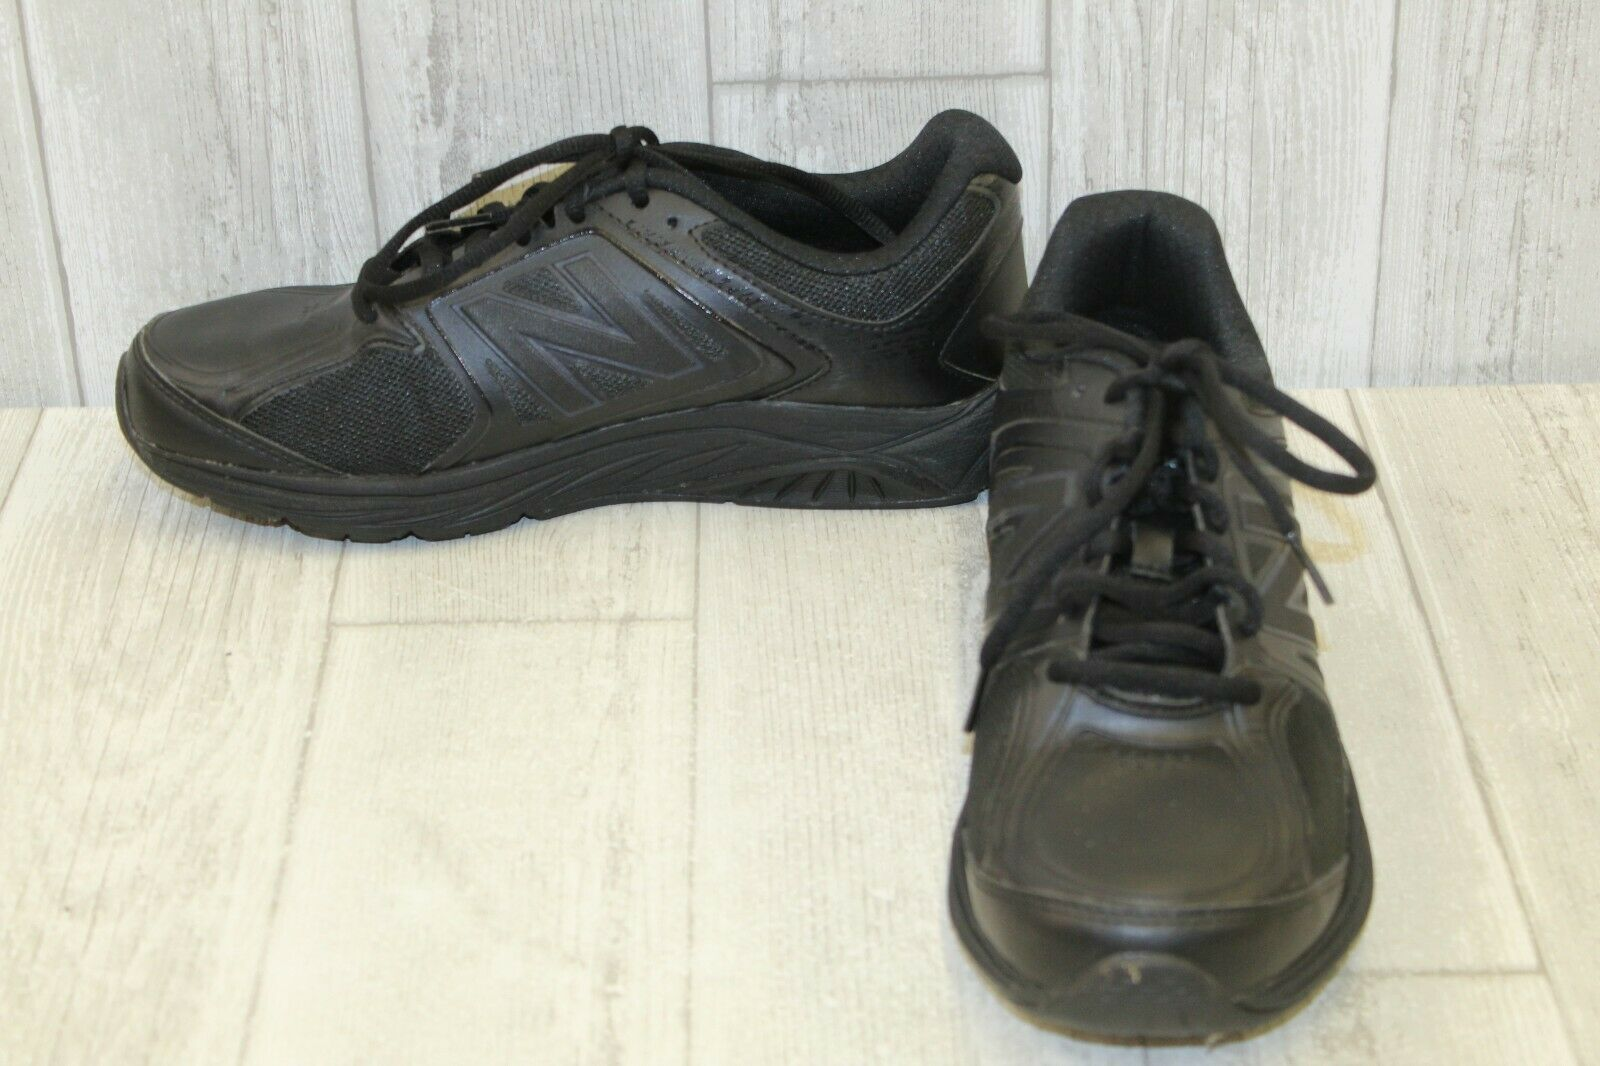 New Balance 847v3 Walking shoes - Women's Size 9B - Black